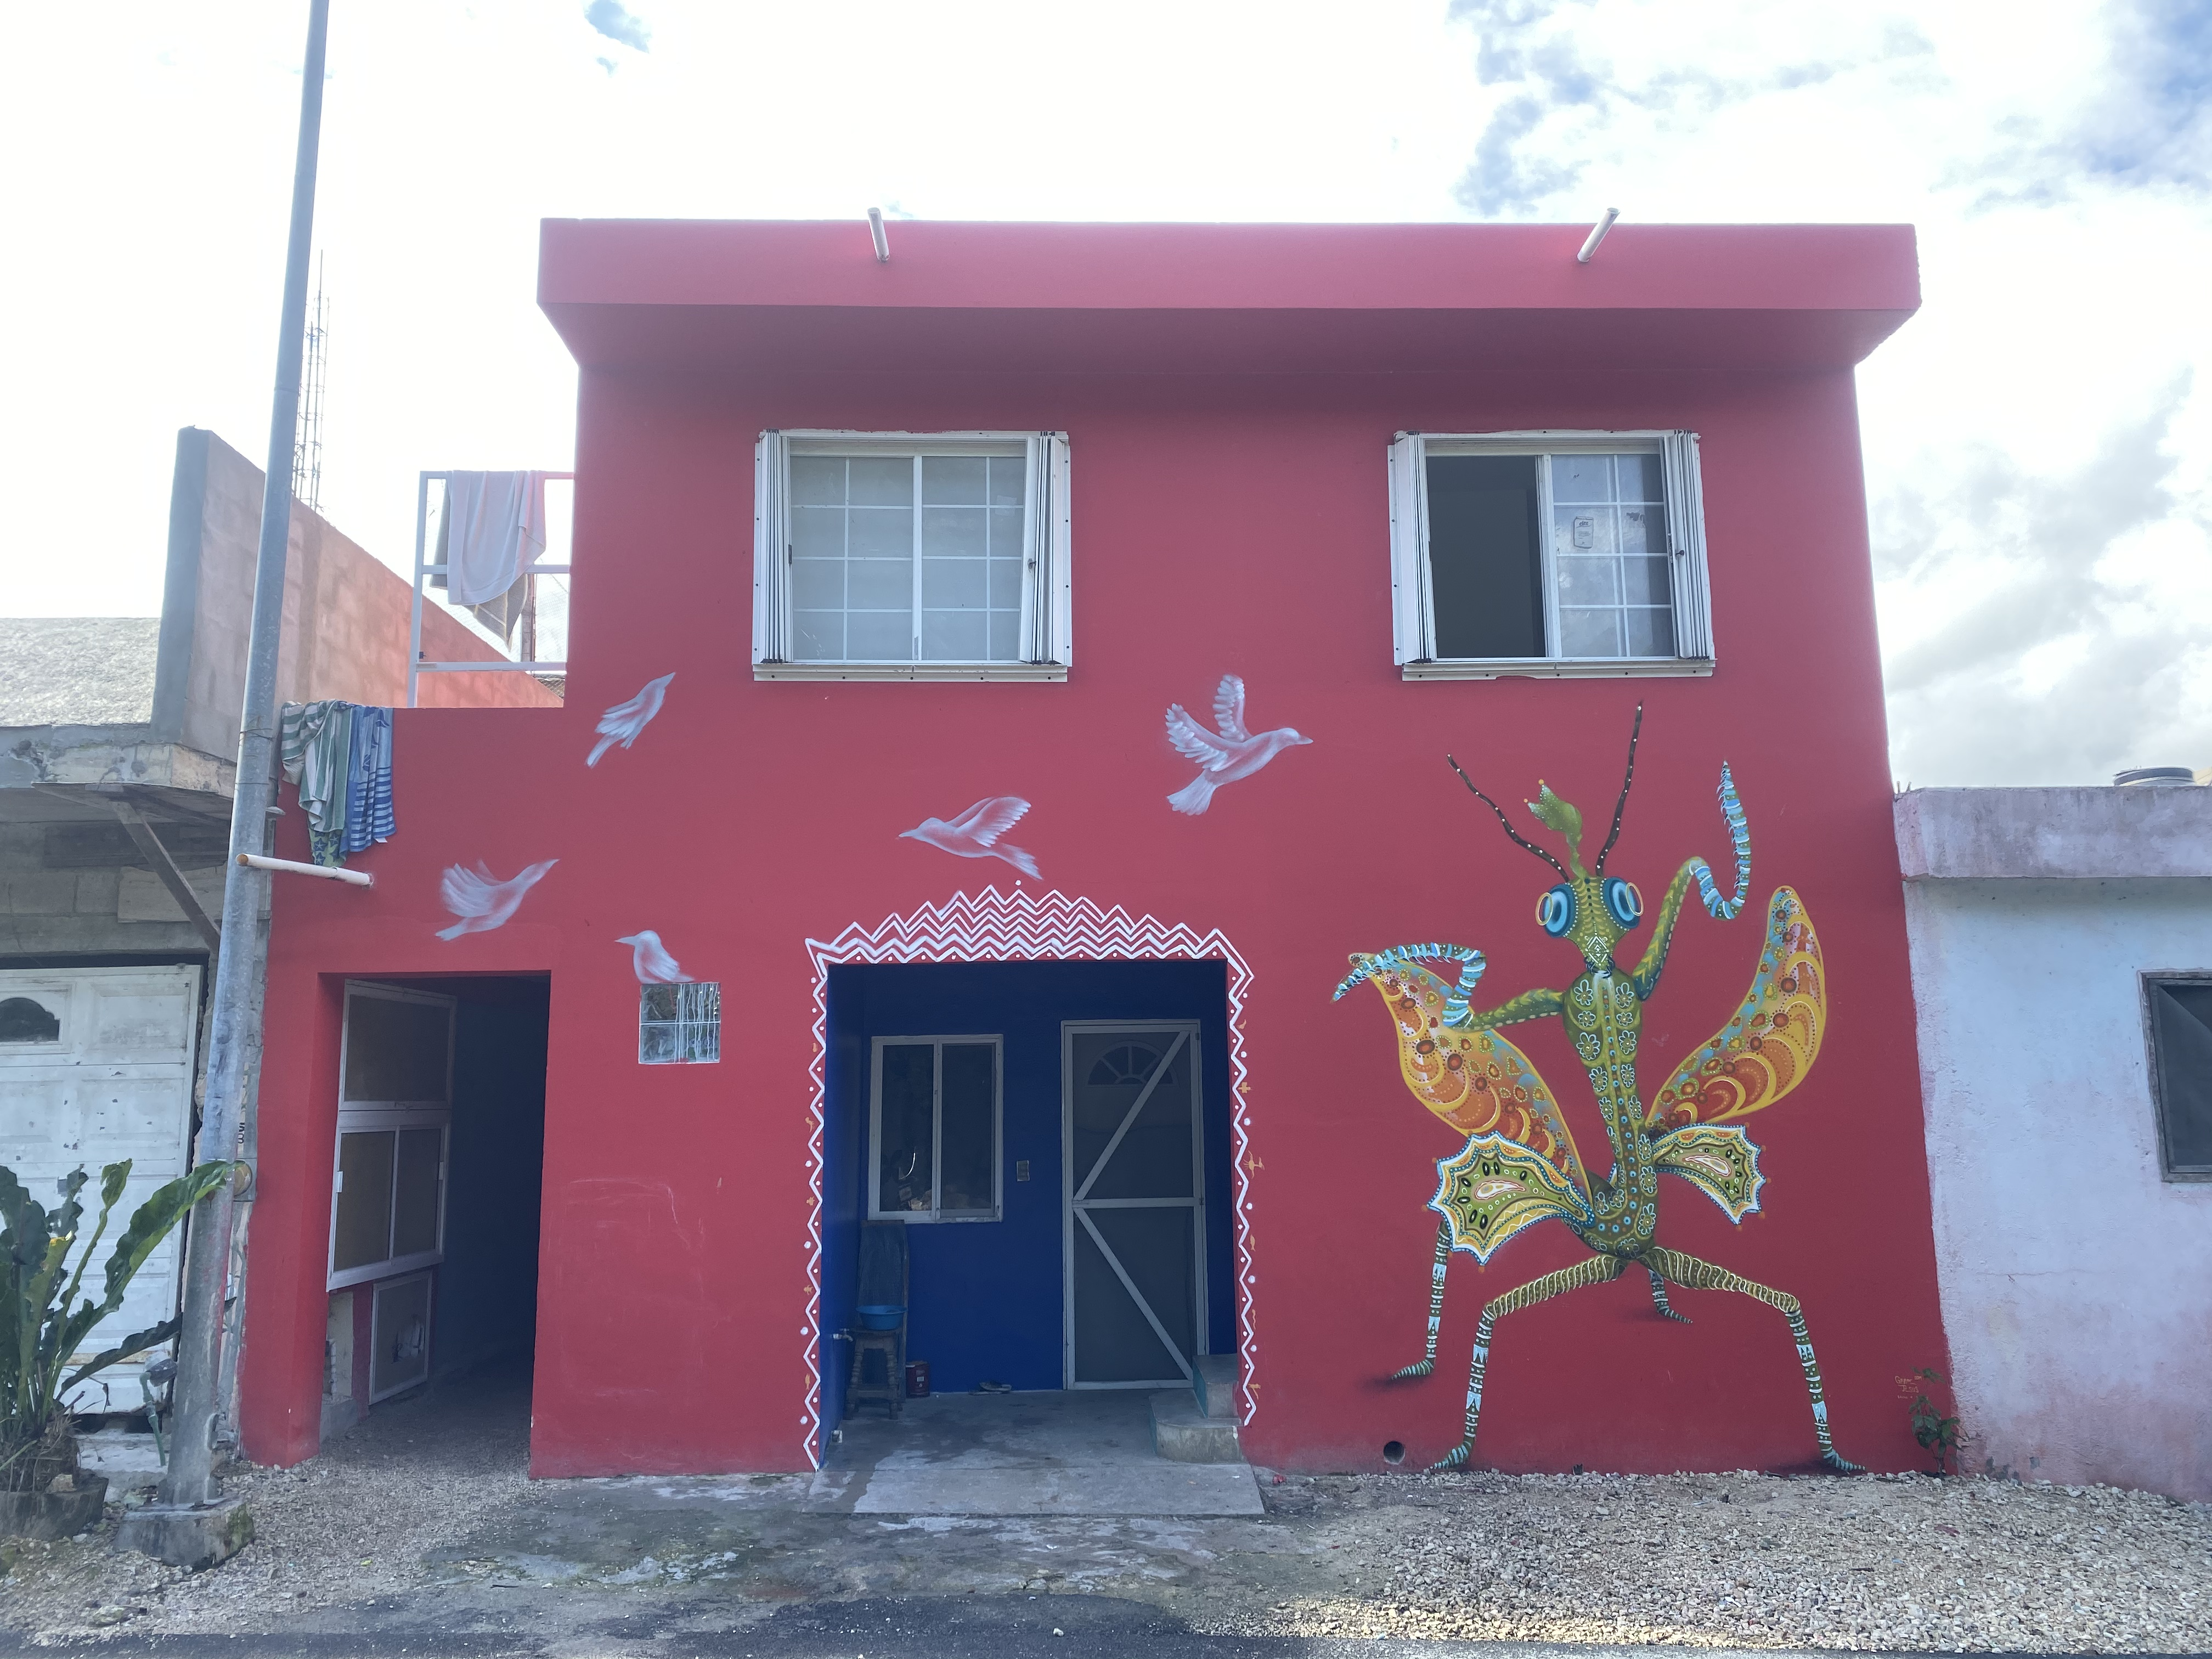 mantis mural in Mexico